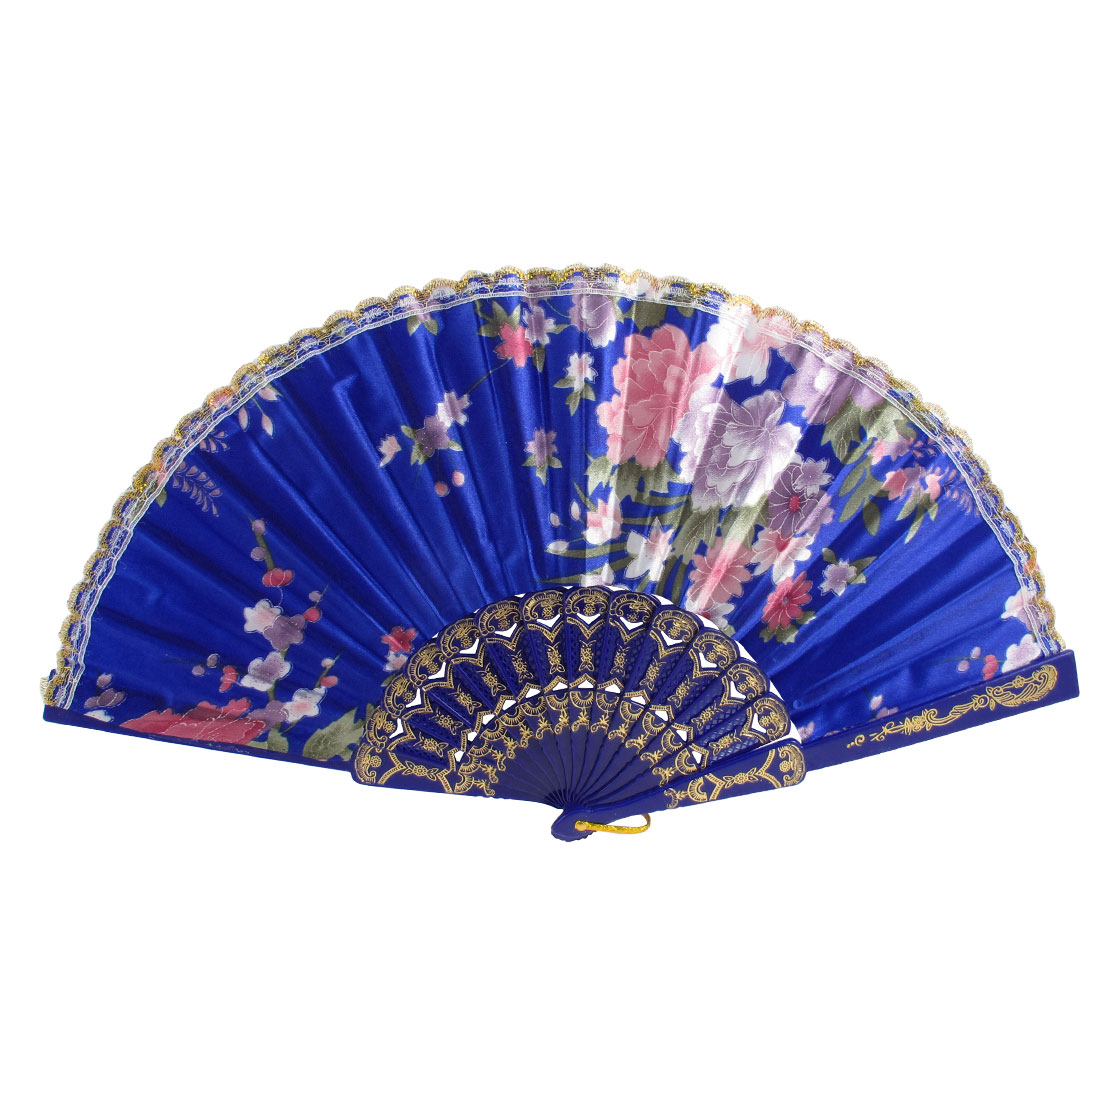 Woman Peony Print Lace Rim Decor Bridals Folded Hand Fan Dark Blue Gold Tone